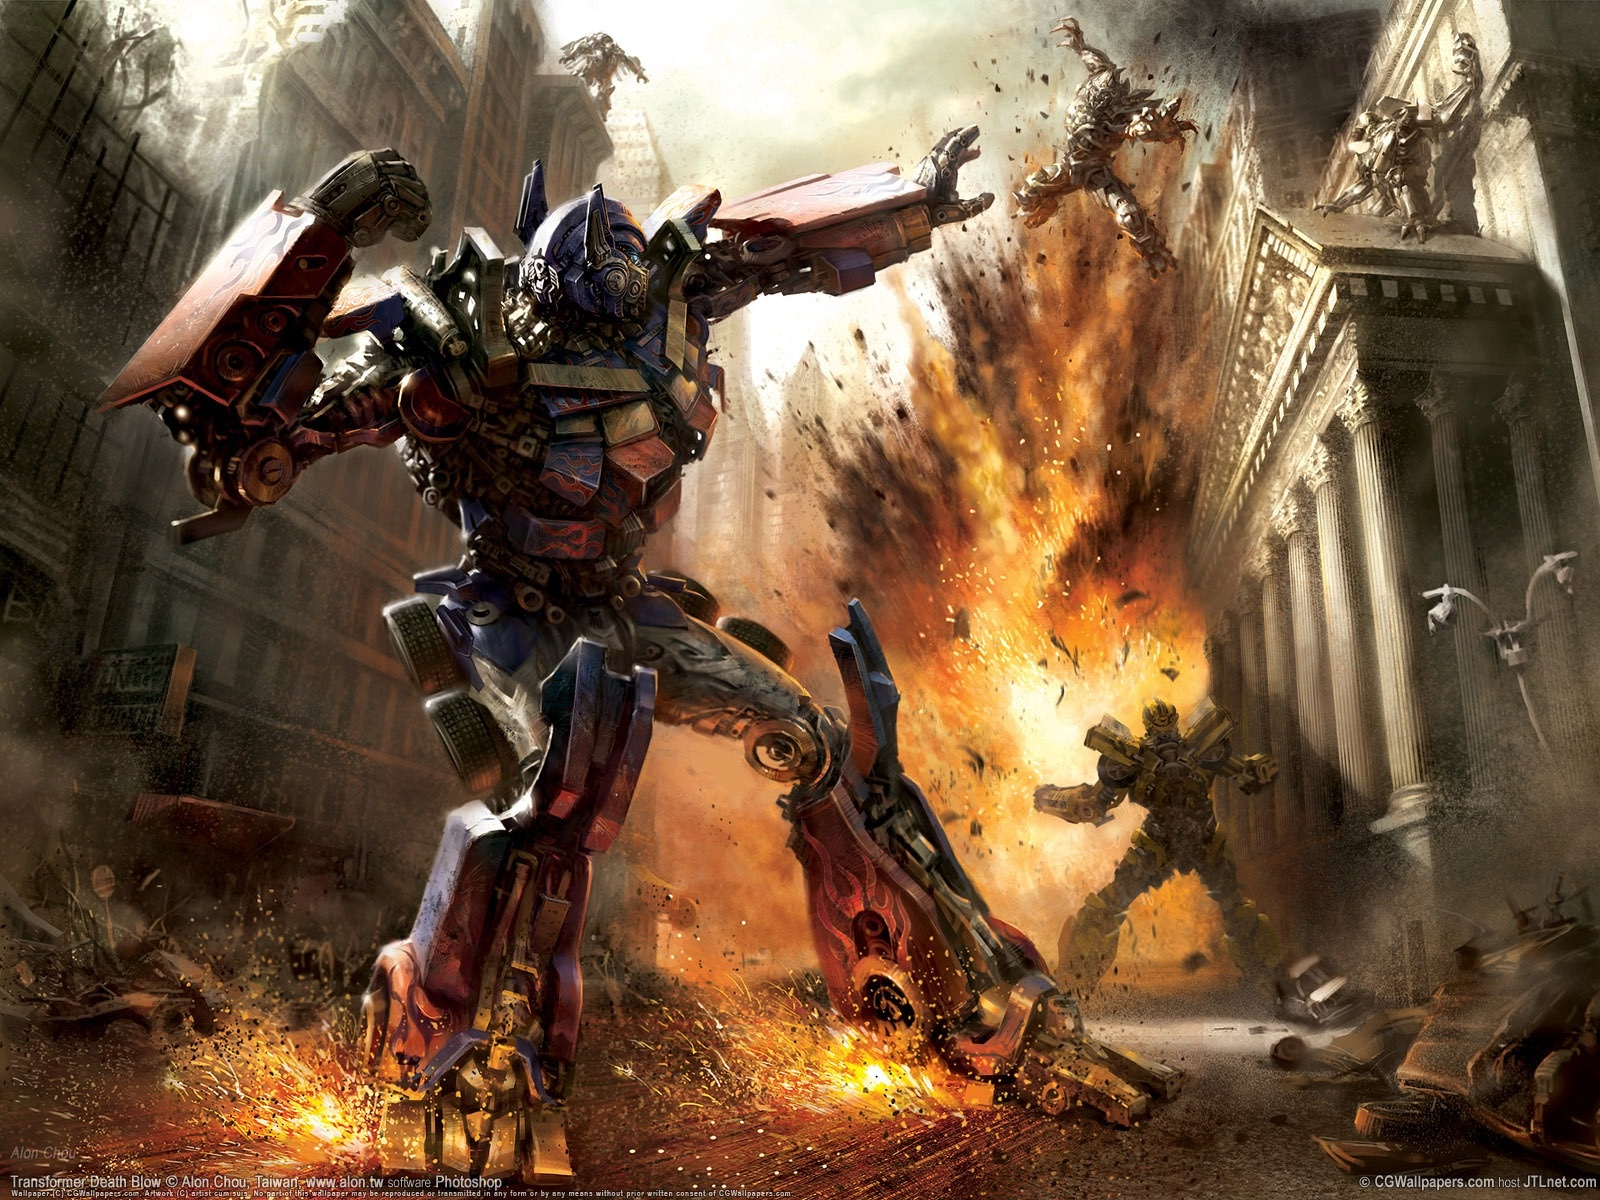 transformers 4 is on the horizon